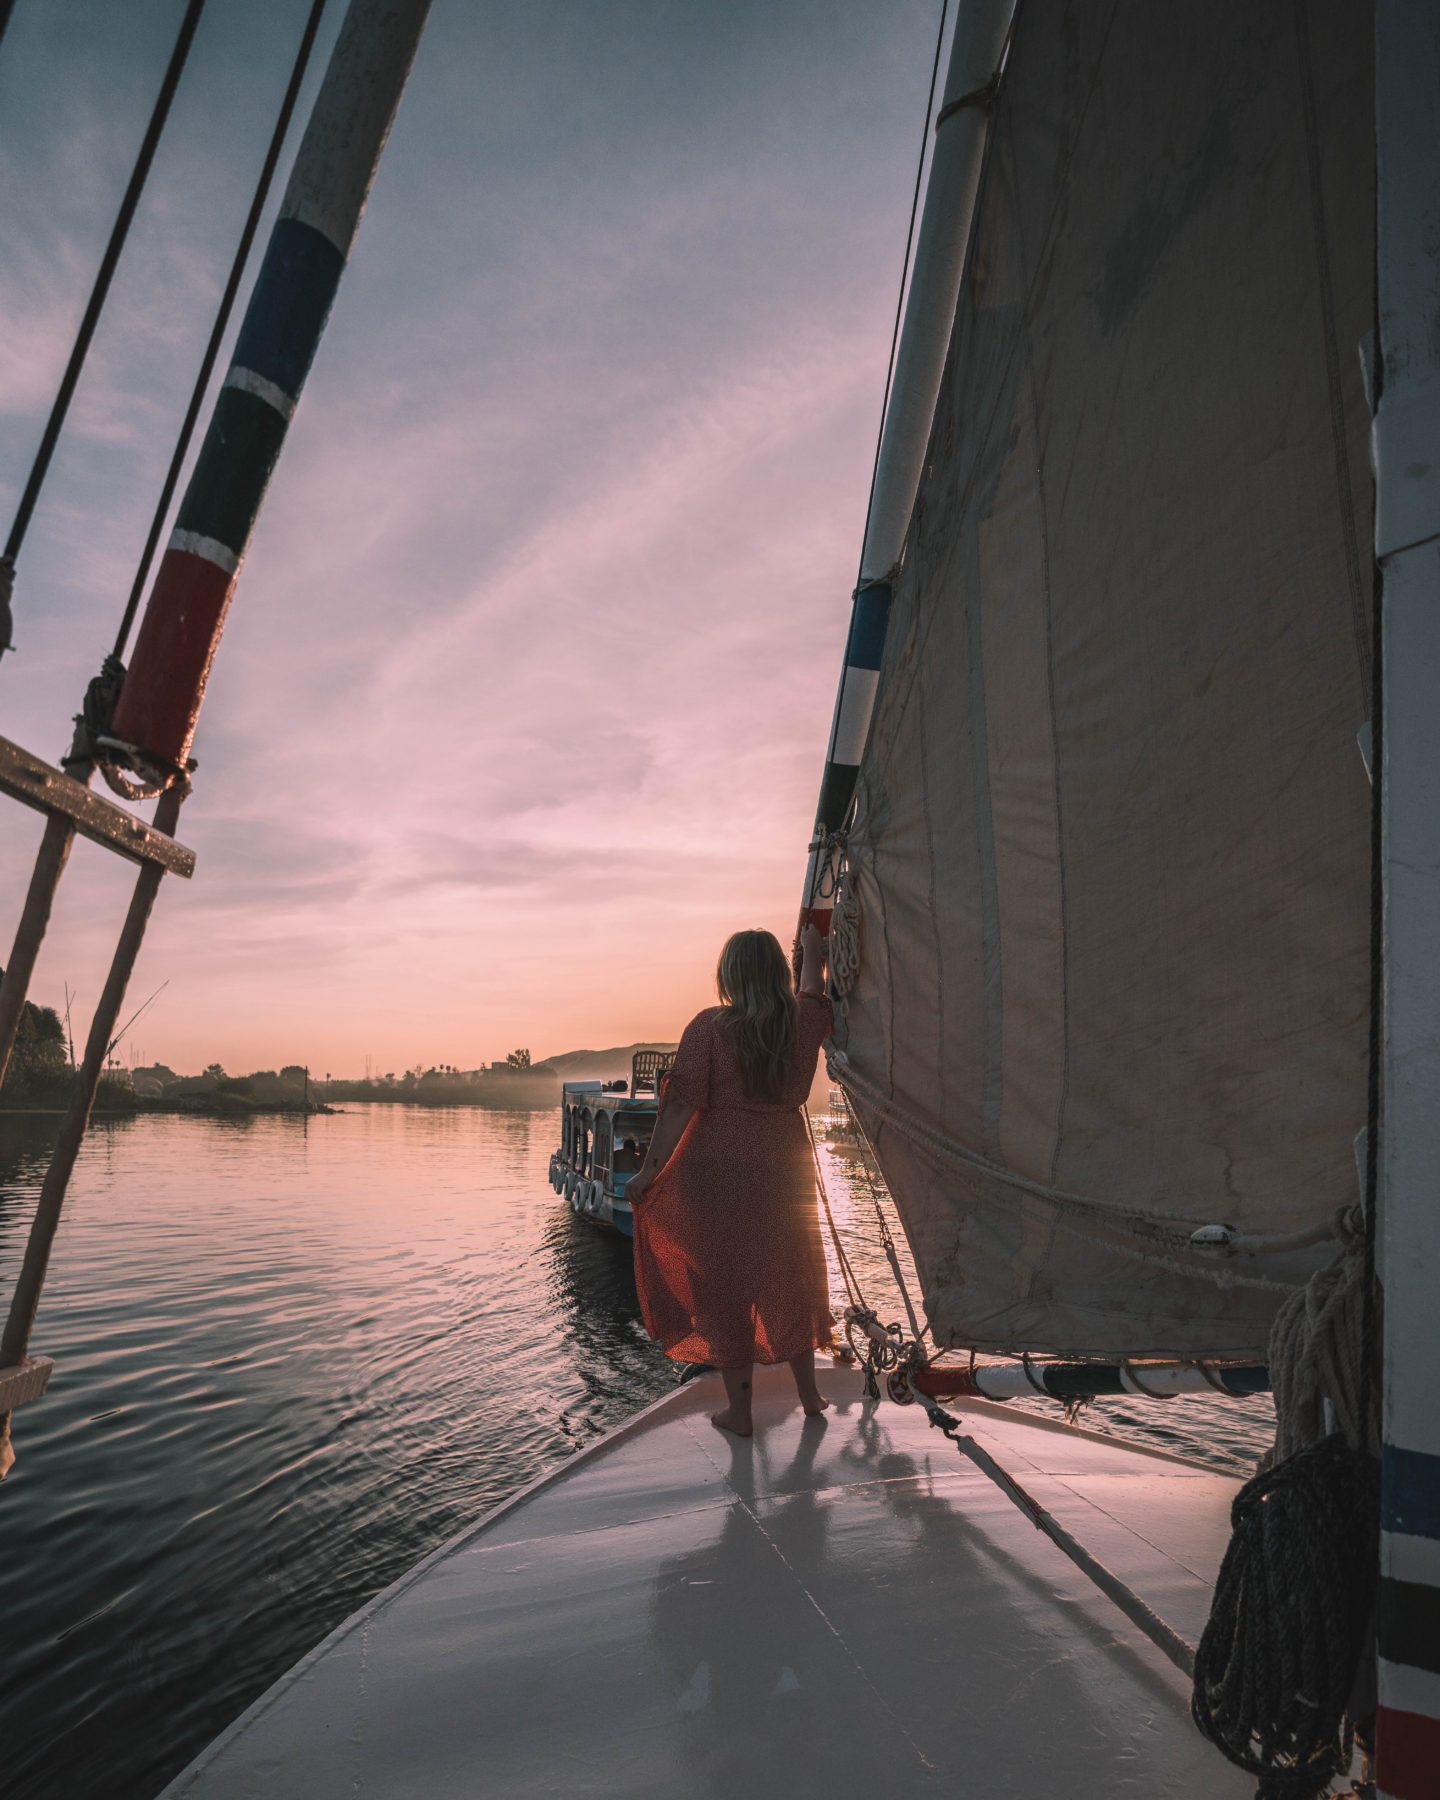 felucca ride on the nile river during sunset | egypt itinerary